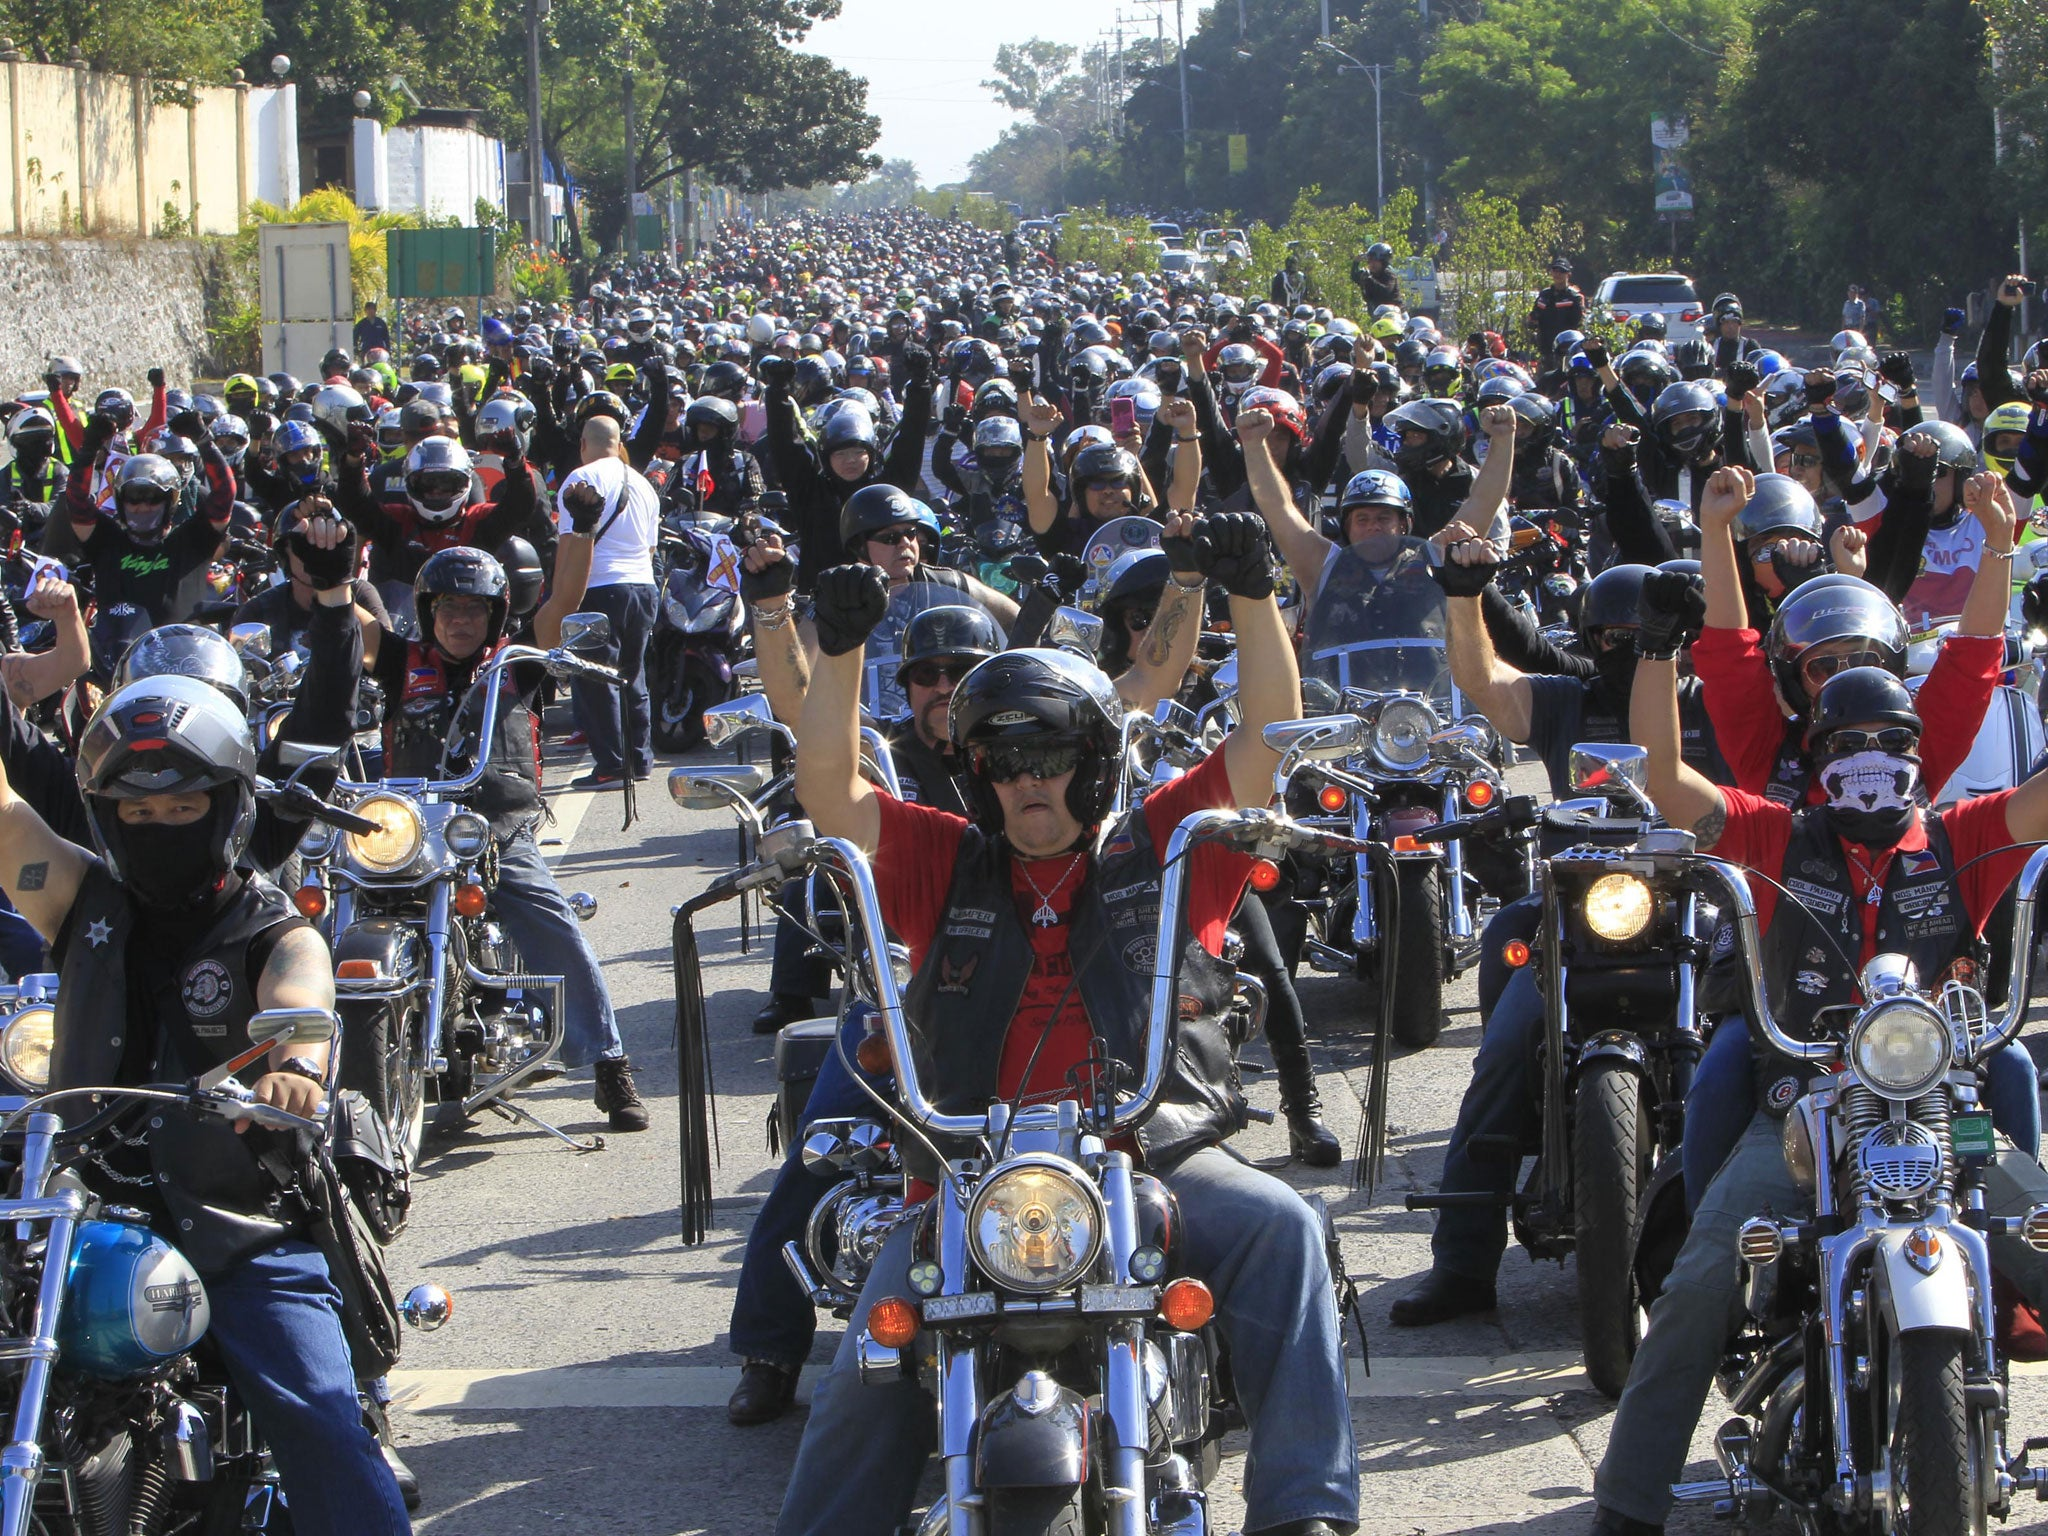 Thousands of bikers protest in Manila | The Independentindependent_brand_ident_LOGOUntitled